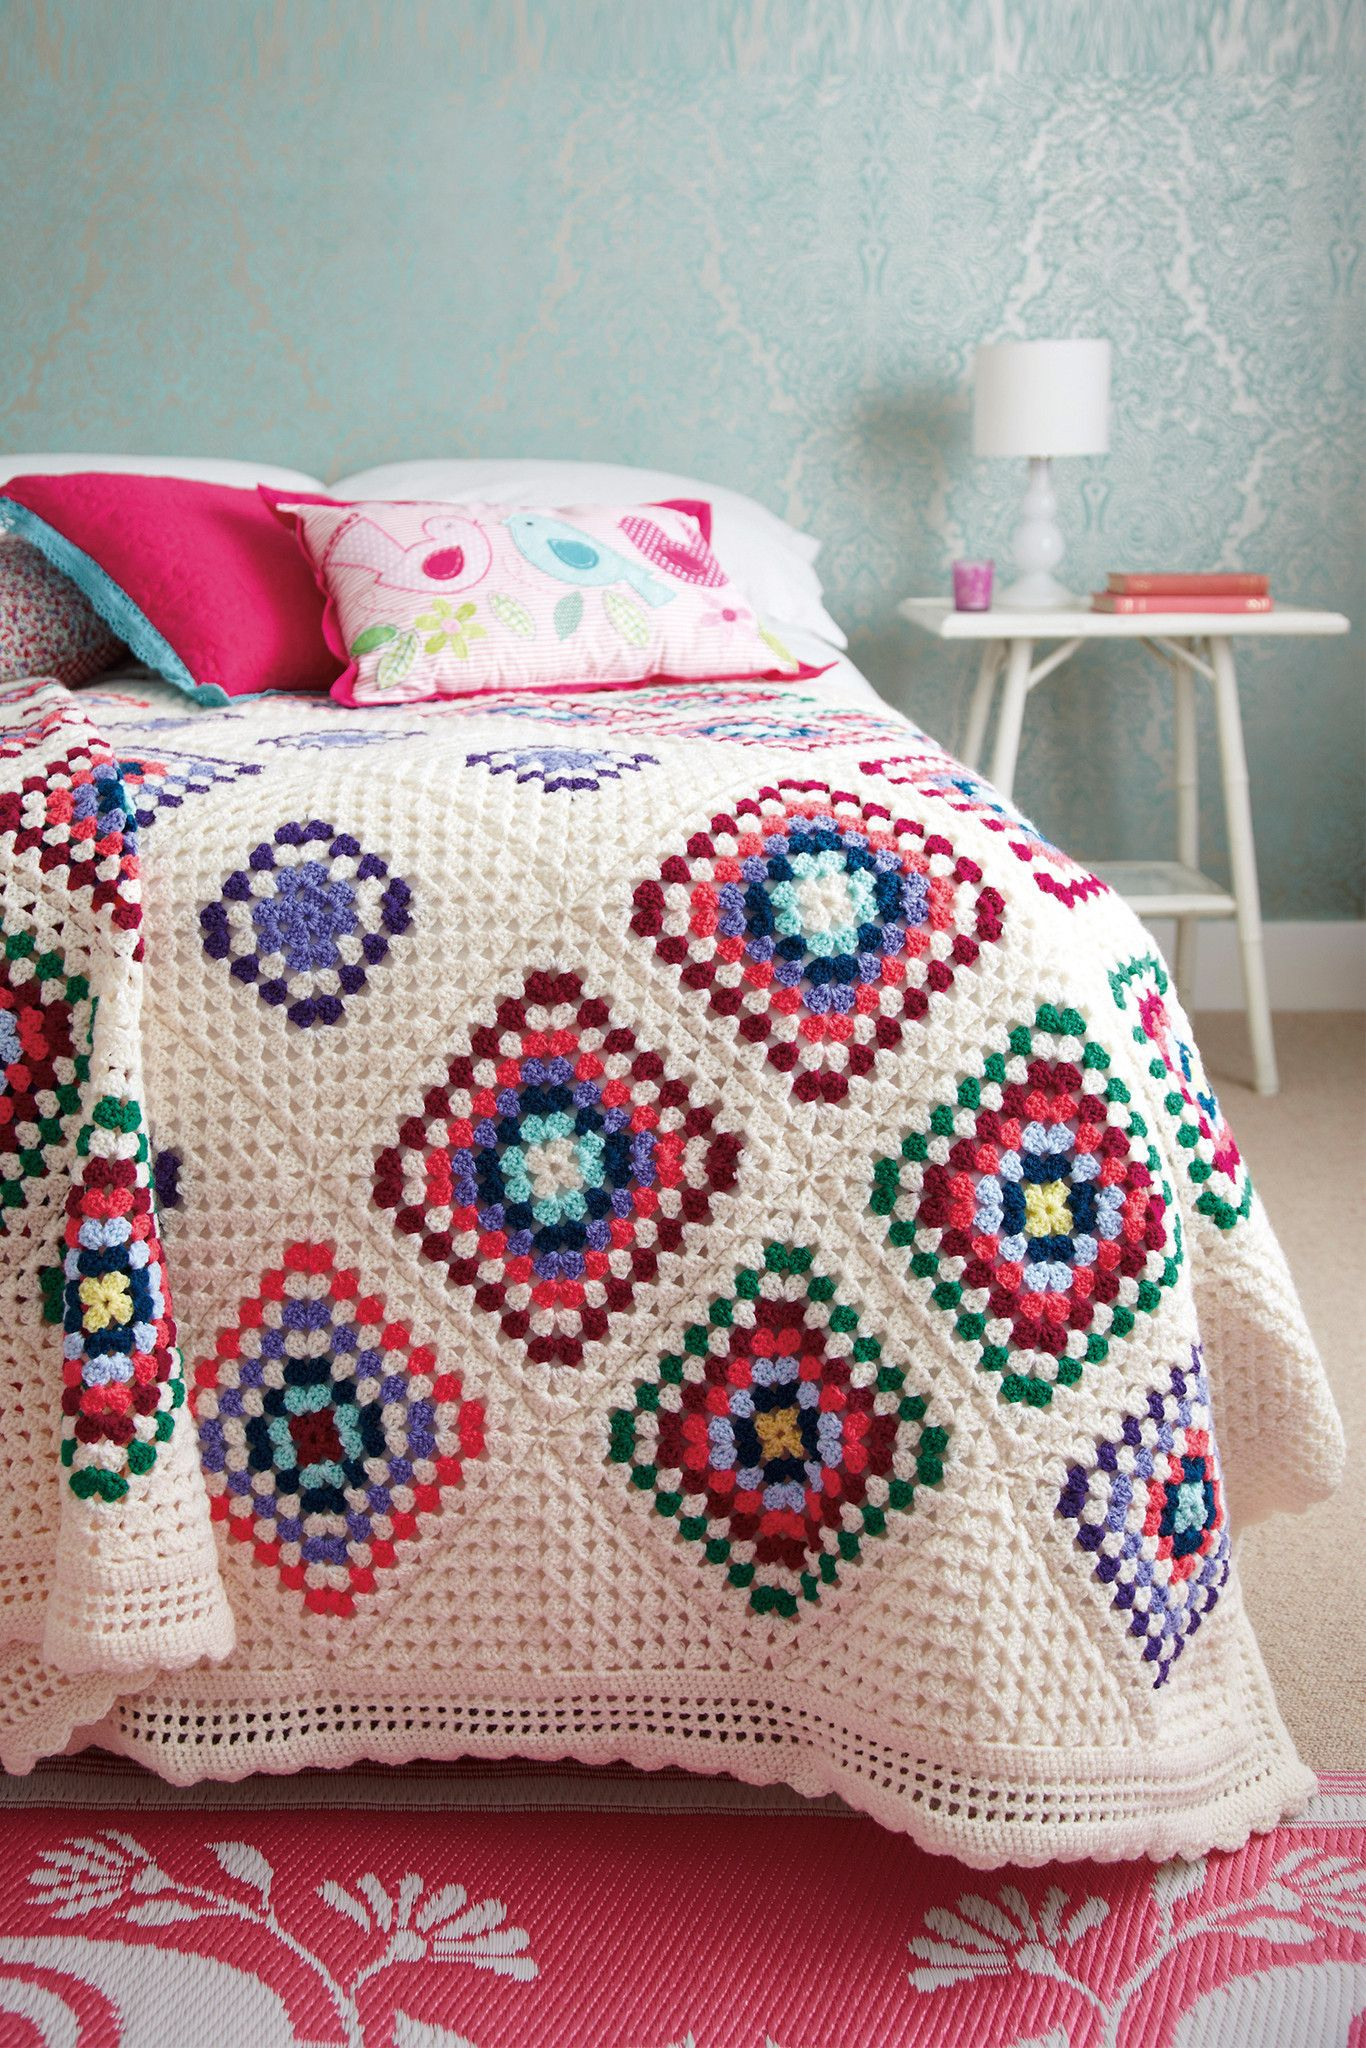 Crocheted bedspread with different size granny squares on cream base ...